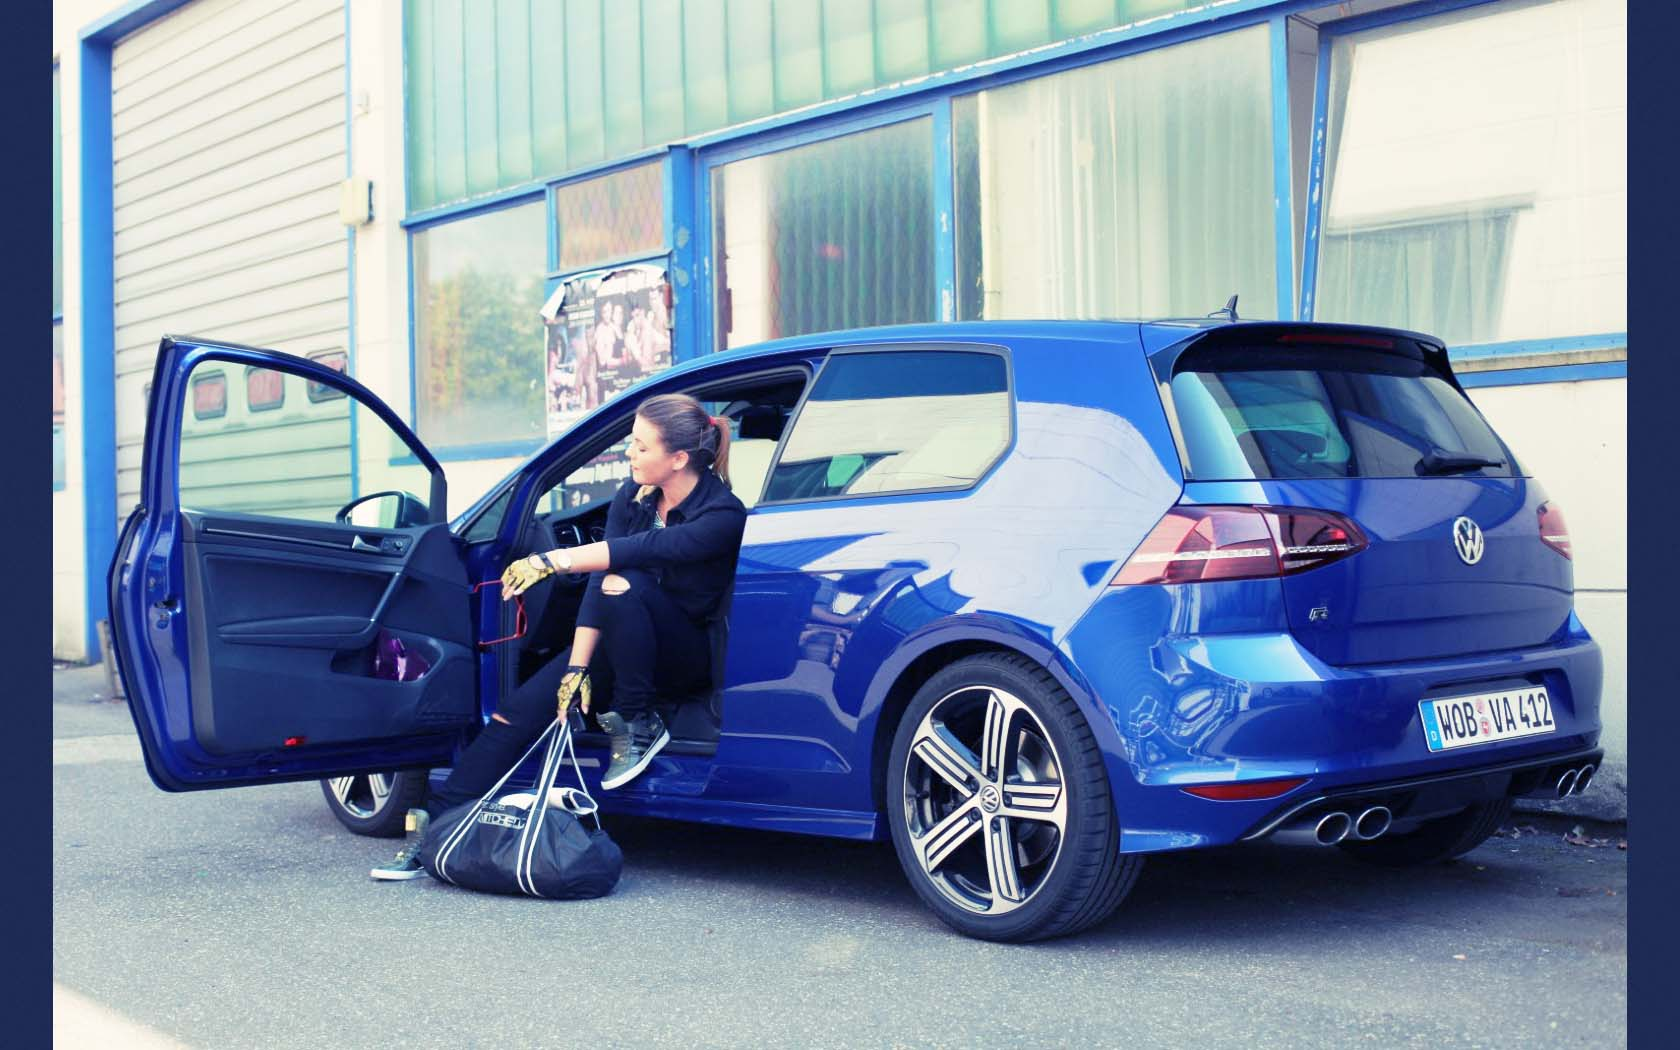 vw golf 7 r 2014 blue blau volkswagen 14 bemoreimpulsee. Black Bedroom Furniture Sets. Home Design Ideas